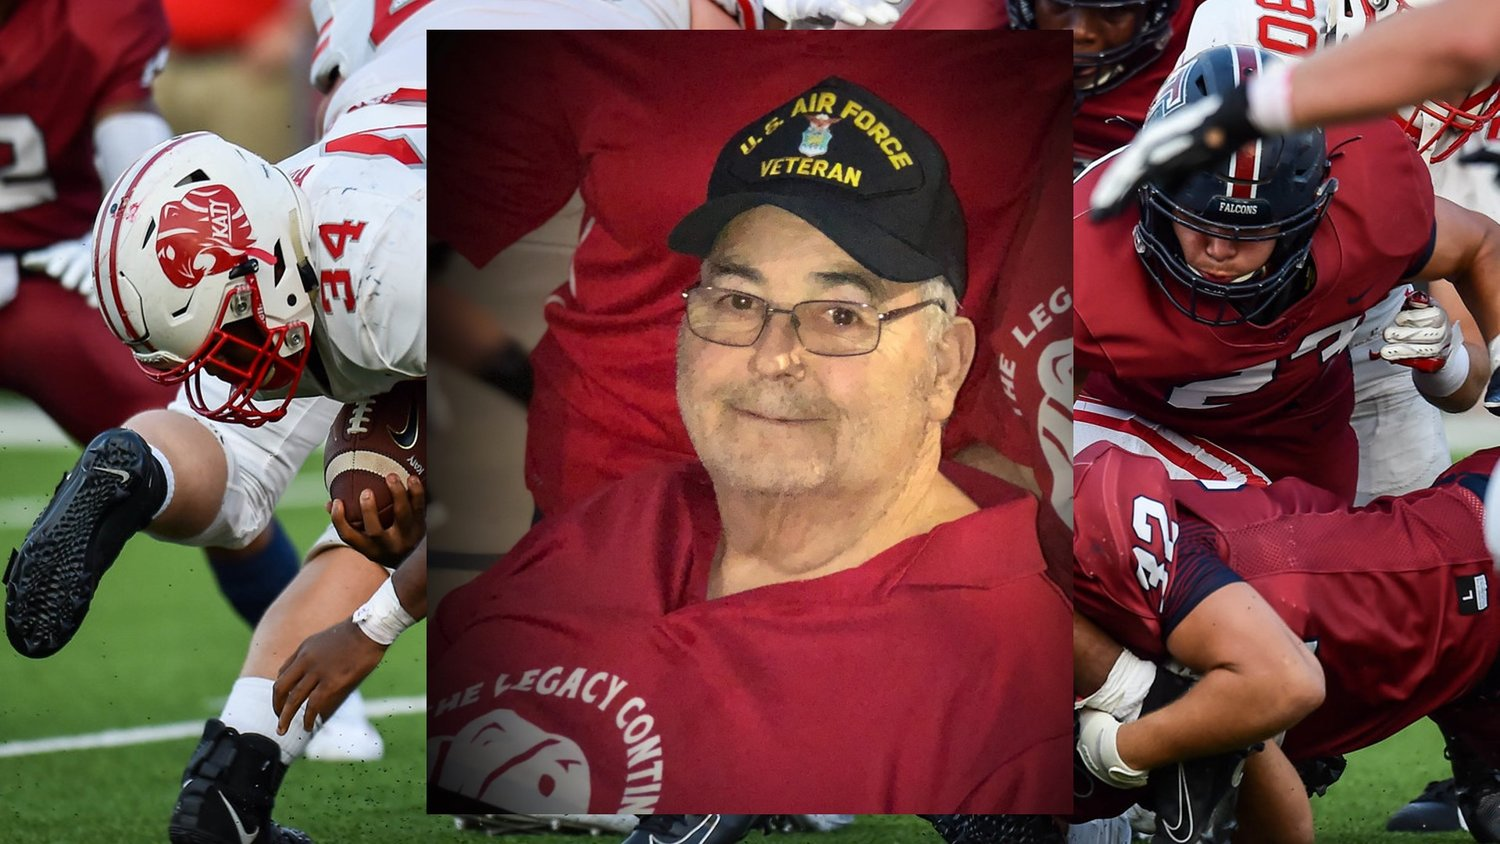 Jennings Larry Sizemore passed away on Wednesday, July 15, 2020 in Katy. He was a long-time supporter of Katy Tiger football and his grandchildren who attended Katy High School. He is dearly missed by his family and loved ones.